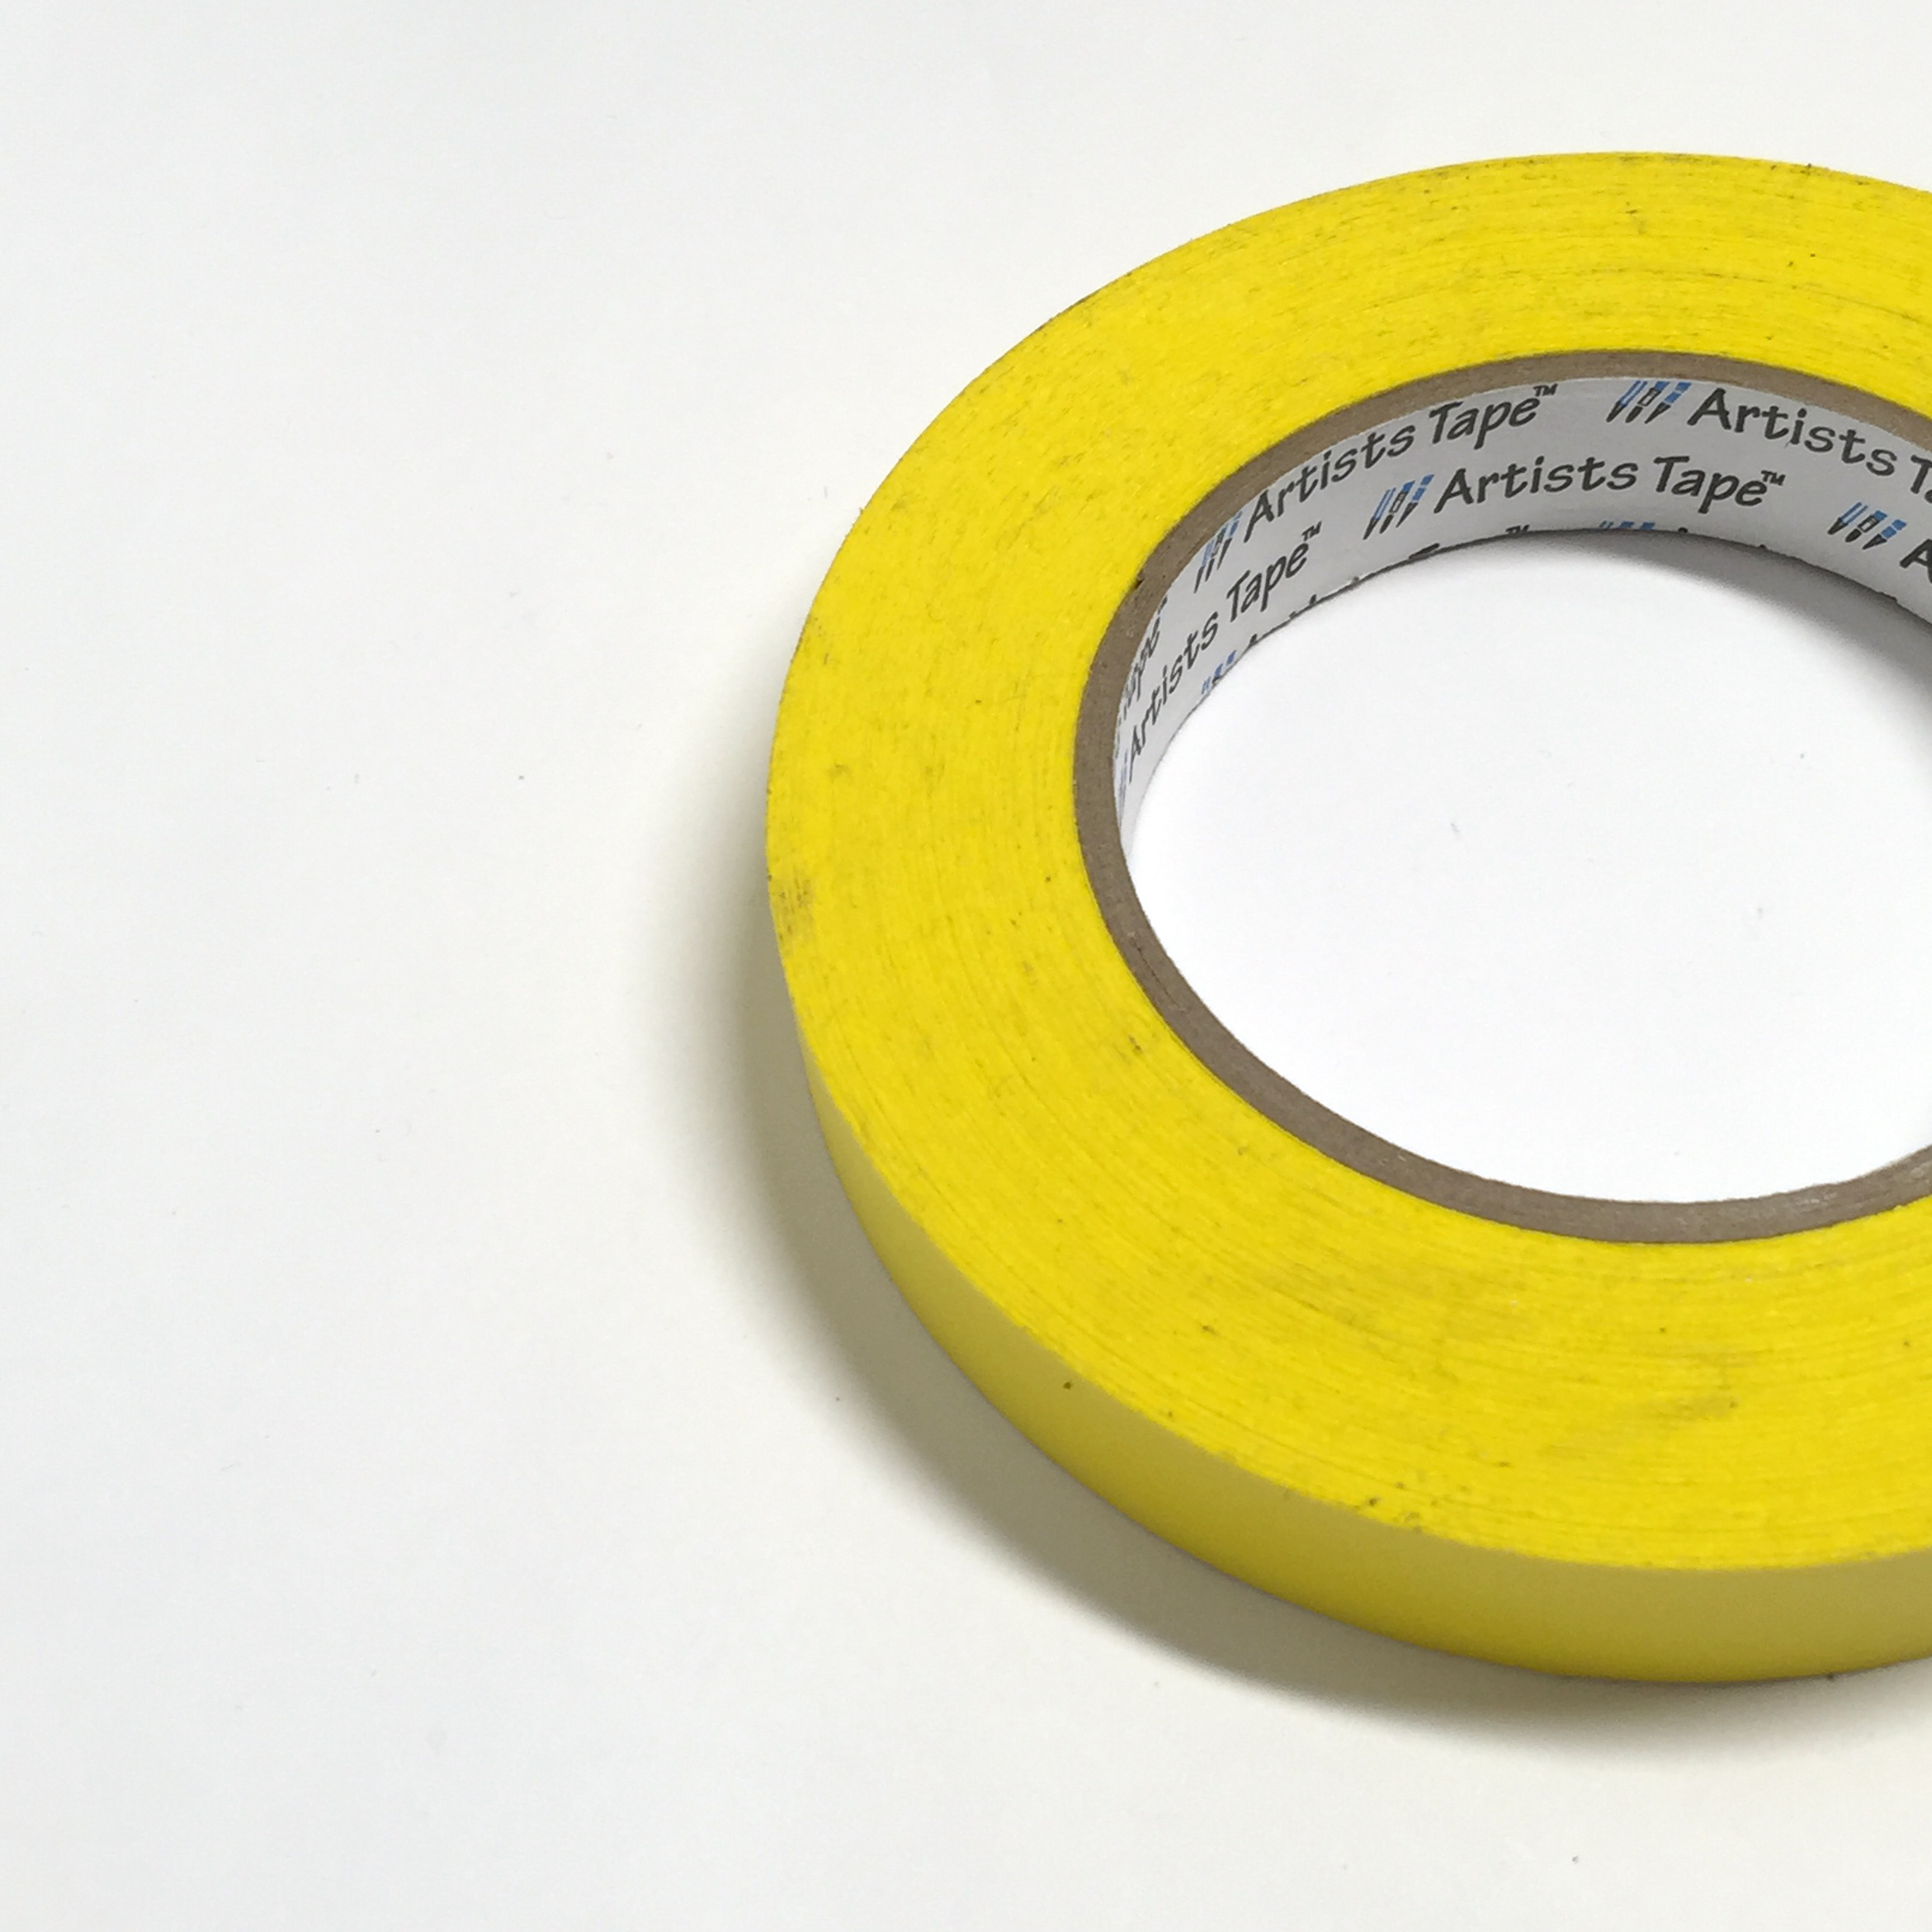 Artists Tape (shown in Yellow)